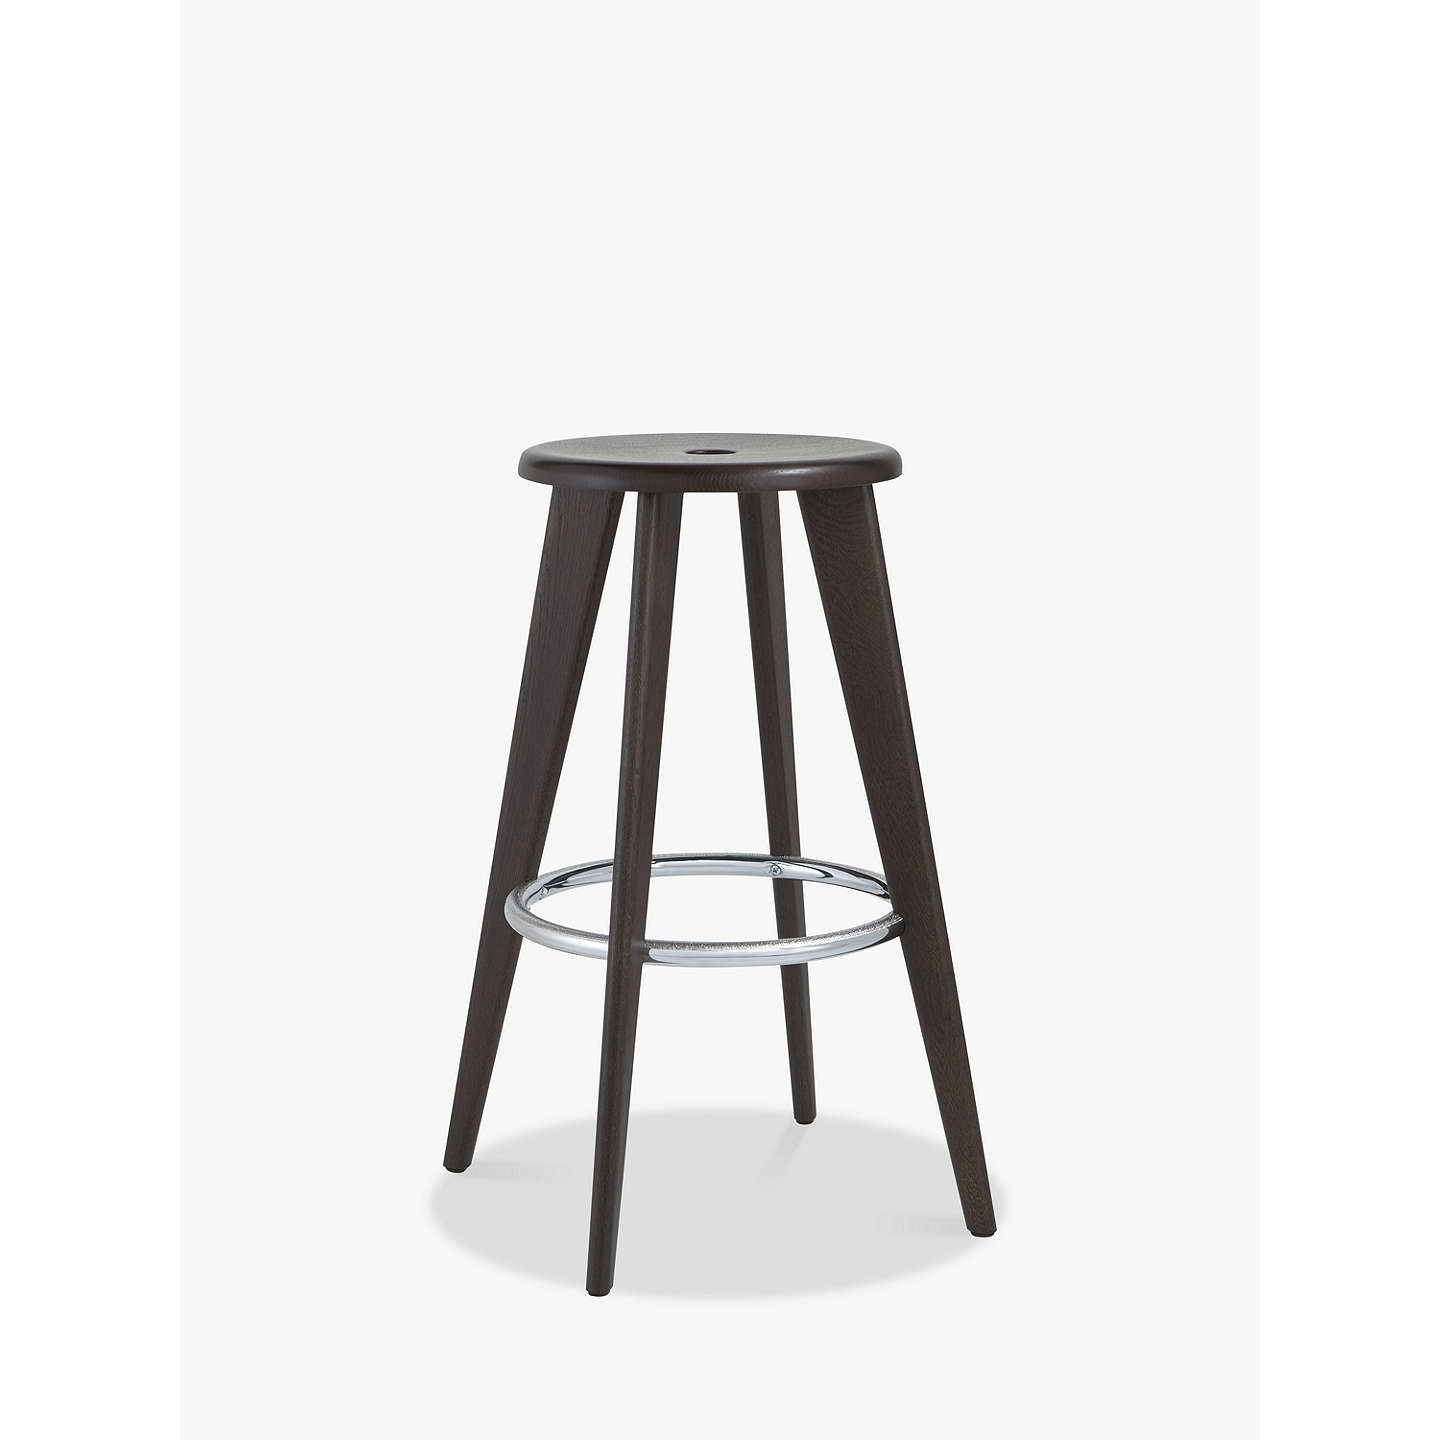 Vitra Tabouret Haut Bar Stool | Dark Oak at John Lewis